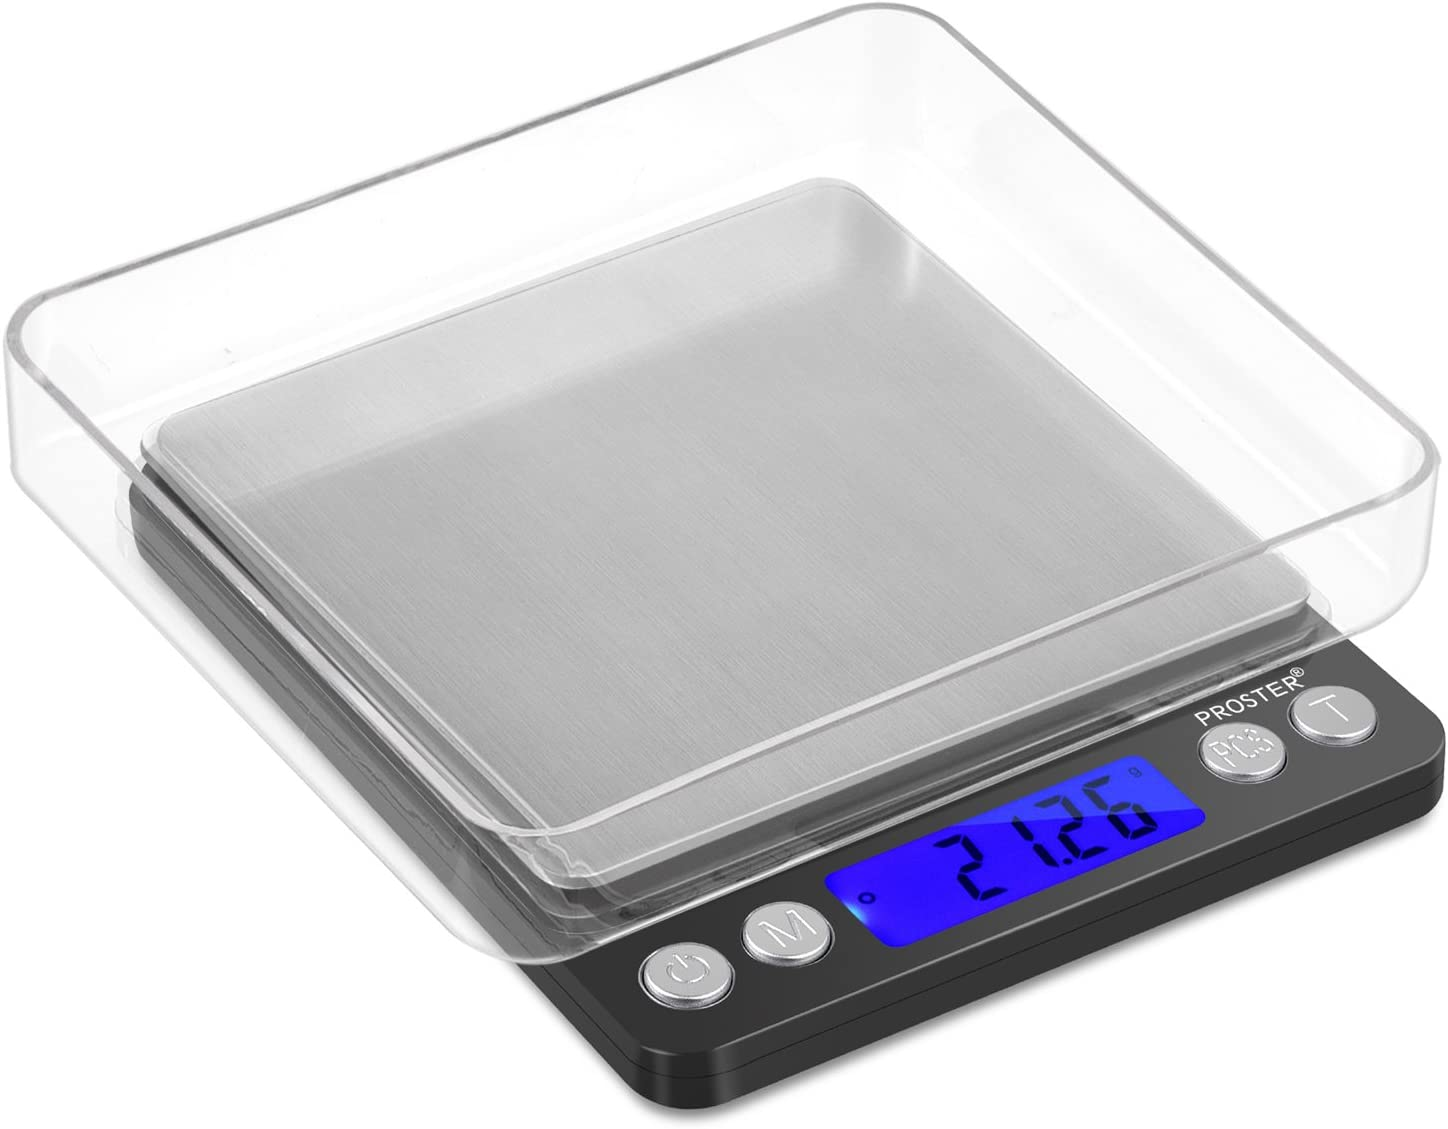 Proster Digital Kitchen Scale 500g/0.01g, Pocket Stainless Steel Food Scale with Backlit LCD, 6 Units Conversion, 2 Trays, Tare Function, for Baking Cooking Diet Jewelry Weighing